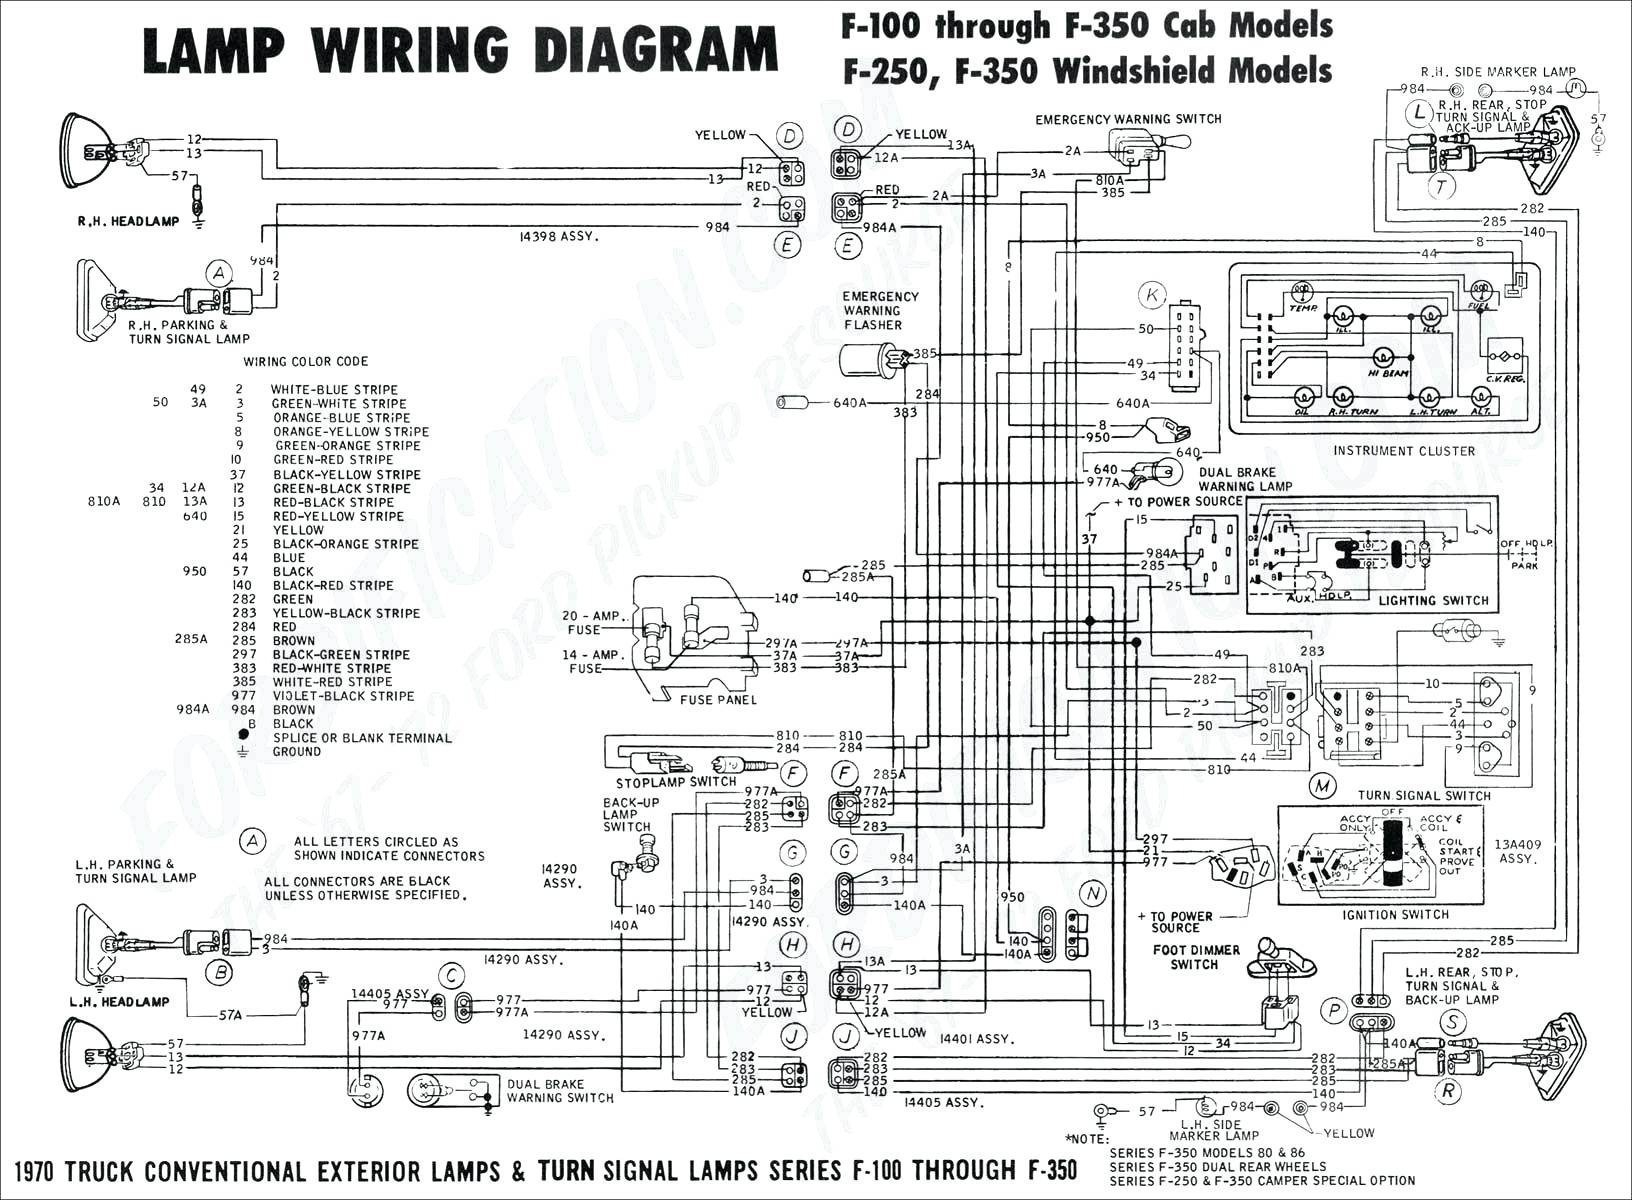 Fontaine Trailer Wiring - Data Wiring Diagram Schematic - 5Th Wheel Trailer Wiring Diagram